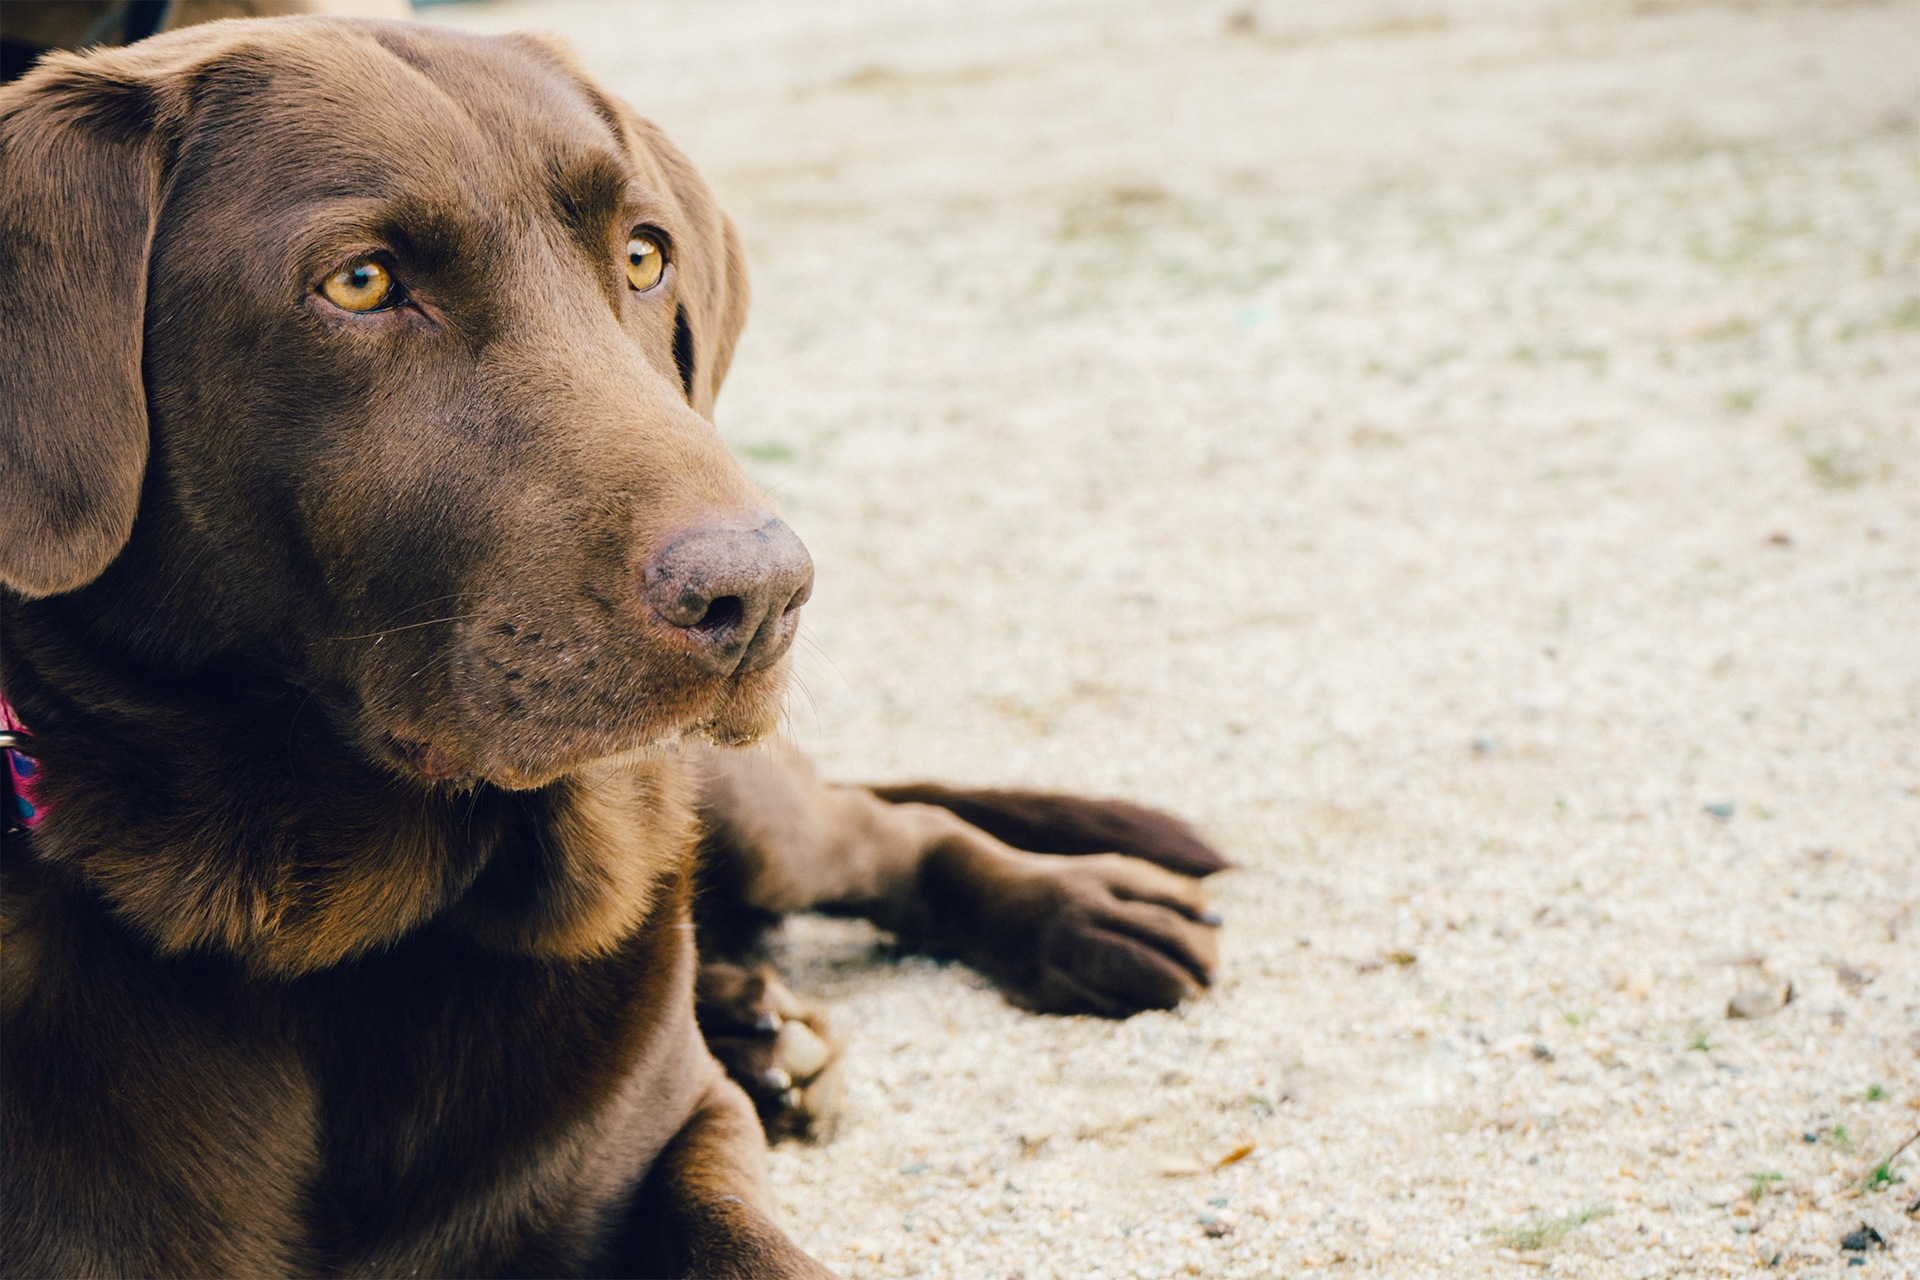 At the beach, a patient dog serves as the perfect companion